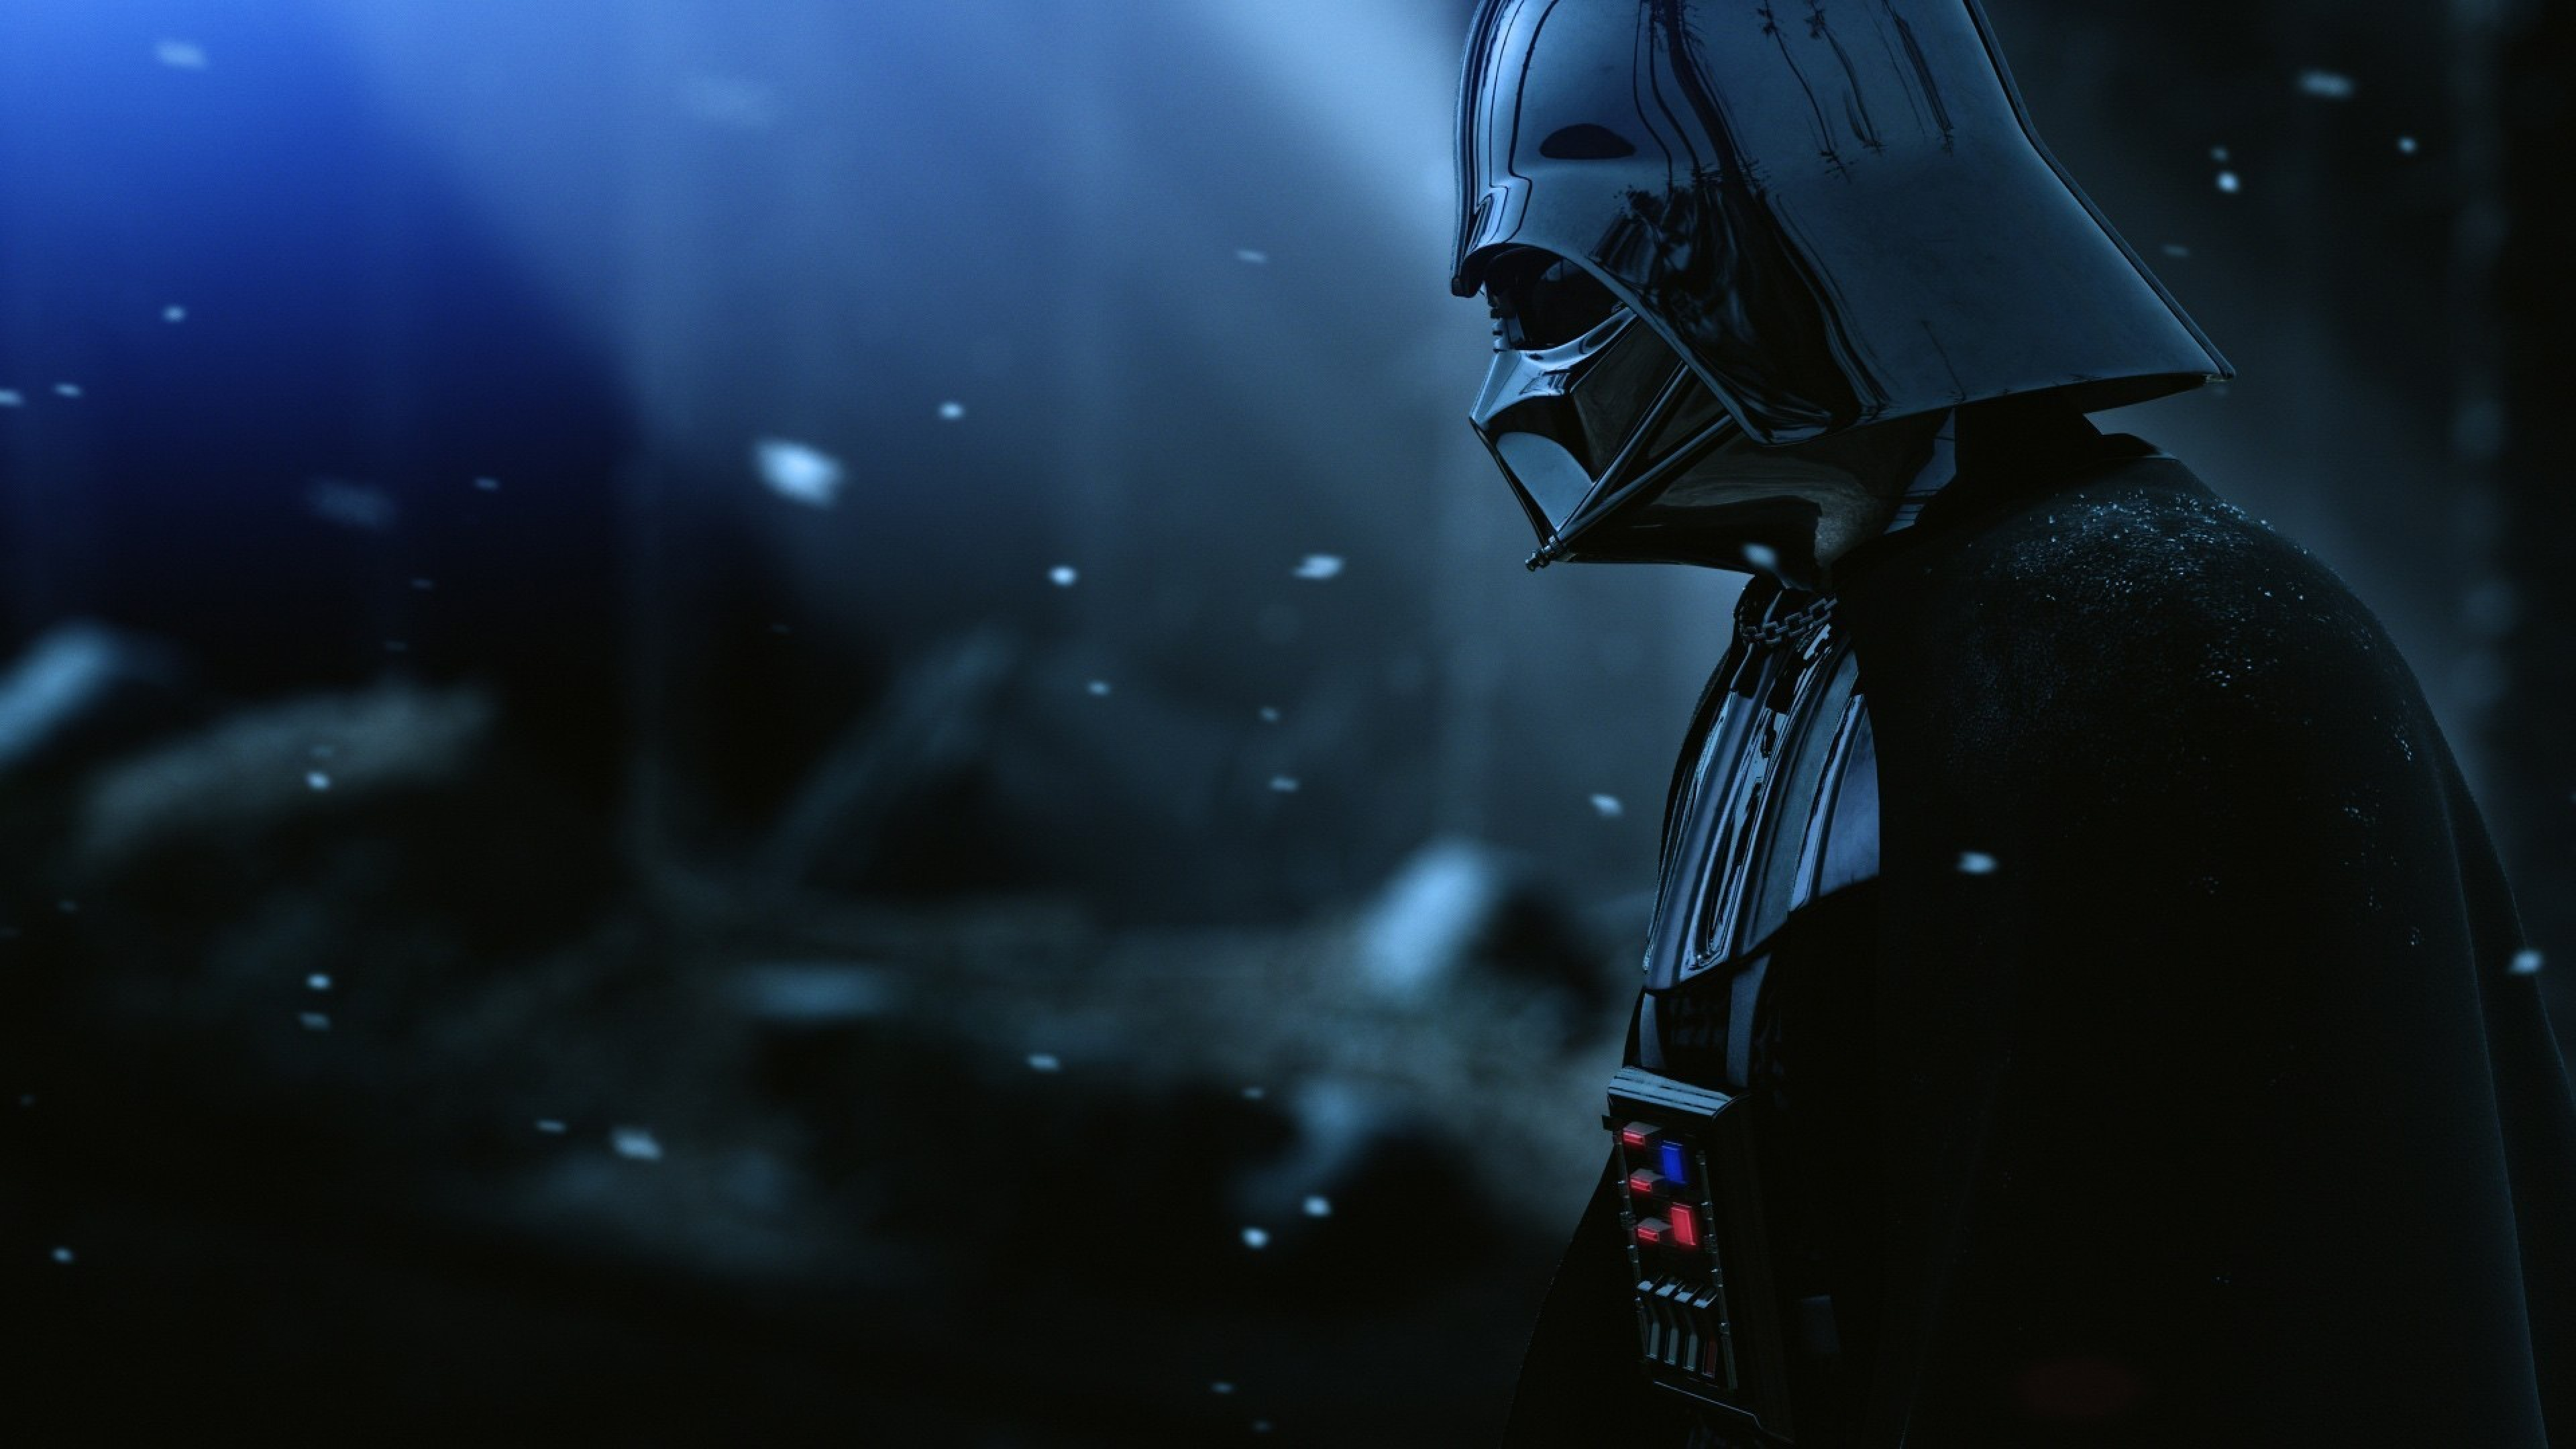 Armor Star wars Film Hat Snow Wallpaper Background 4K Ultra HD 3840x2160